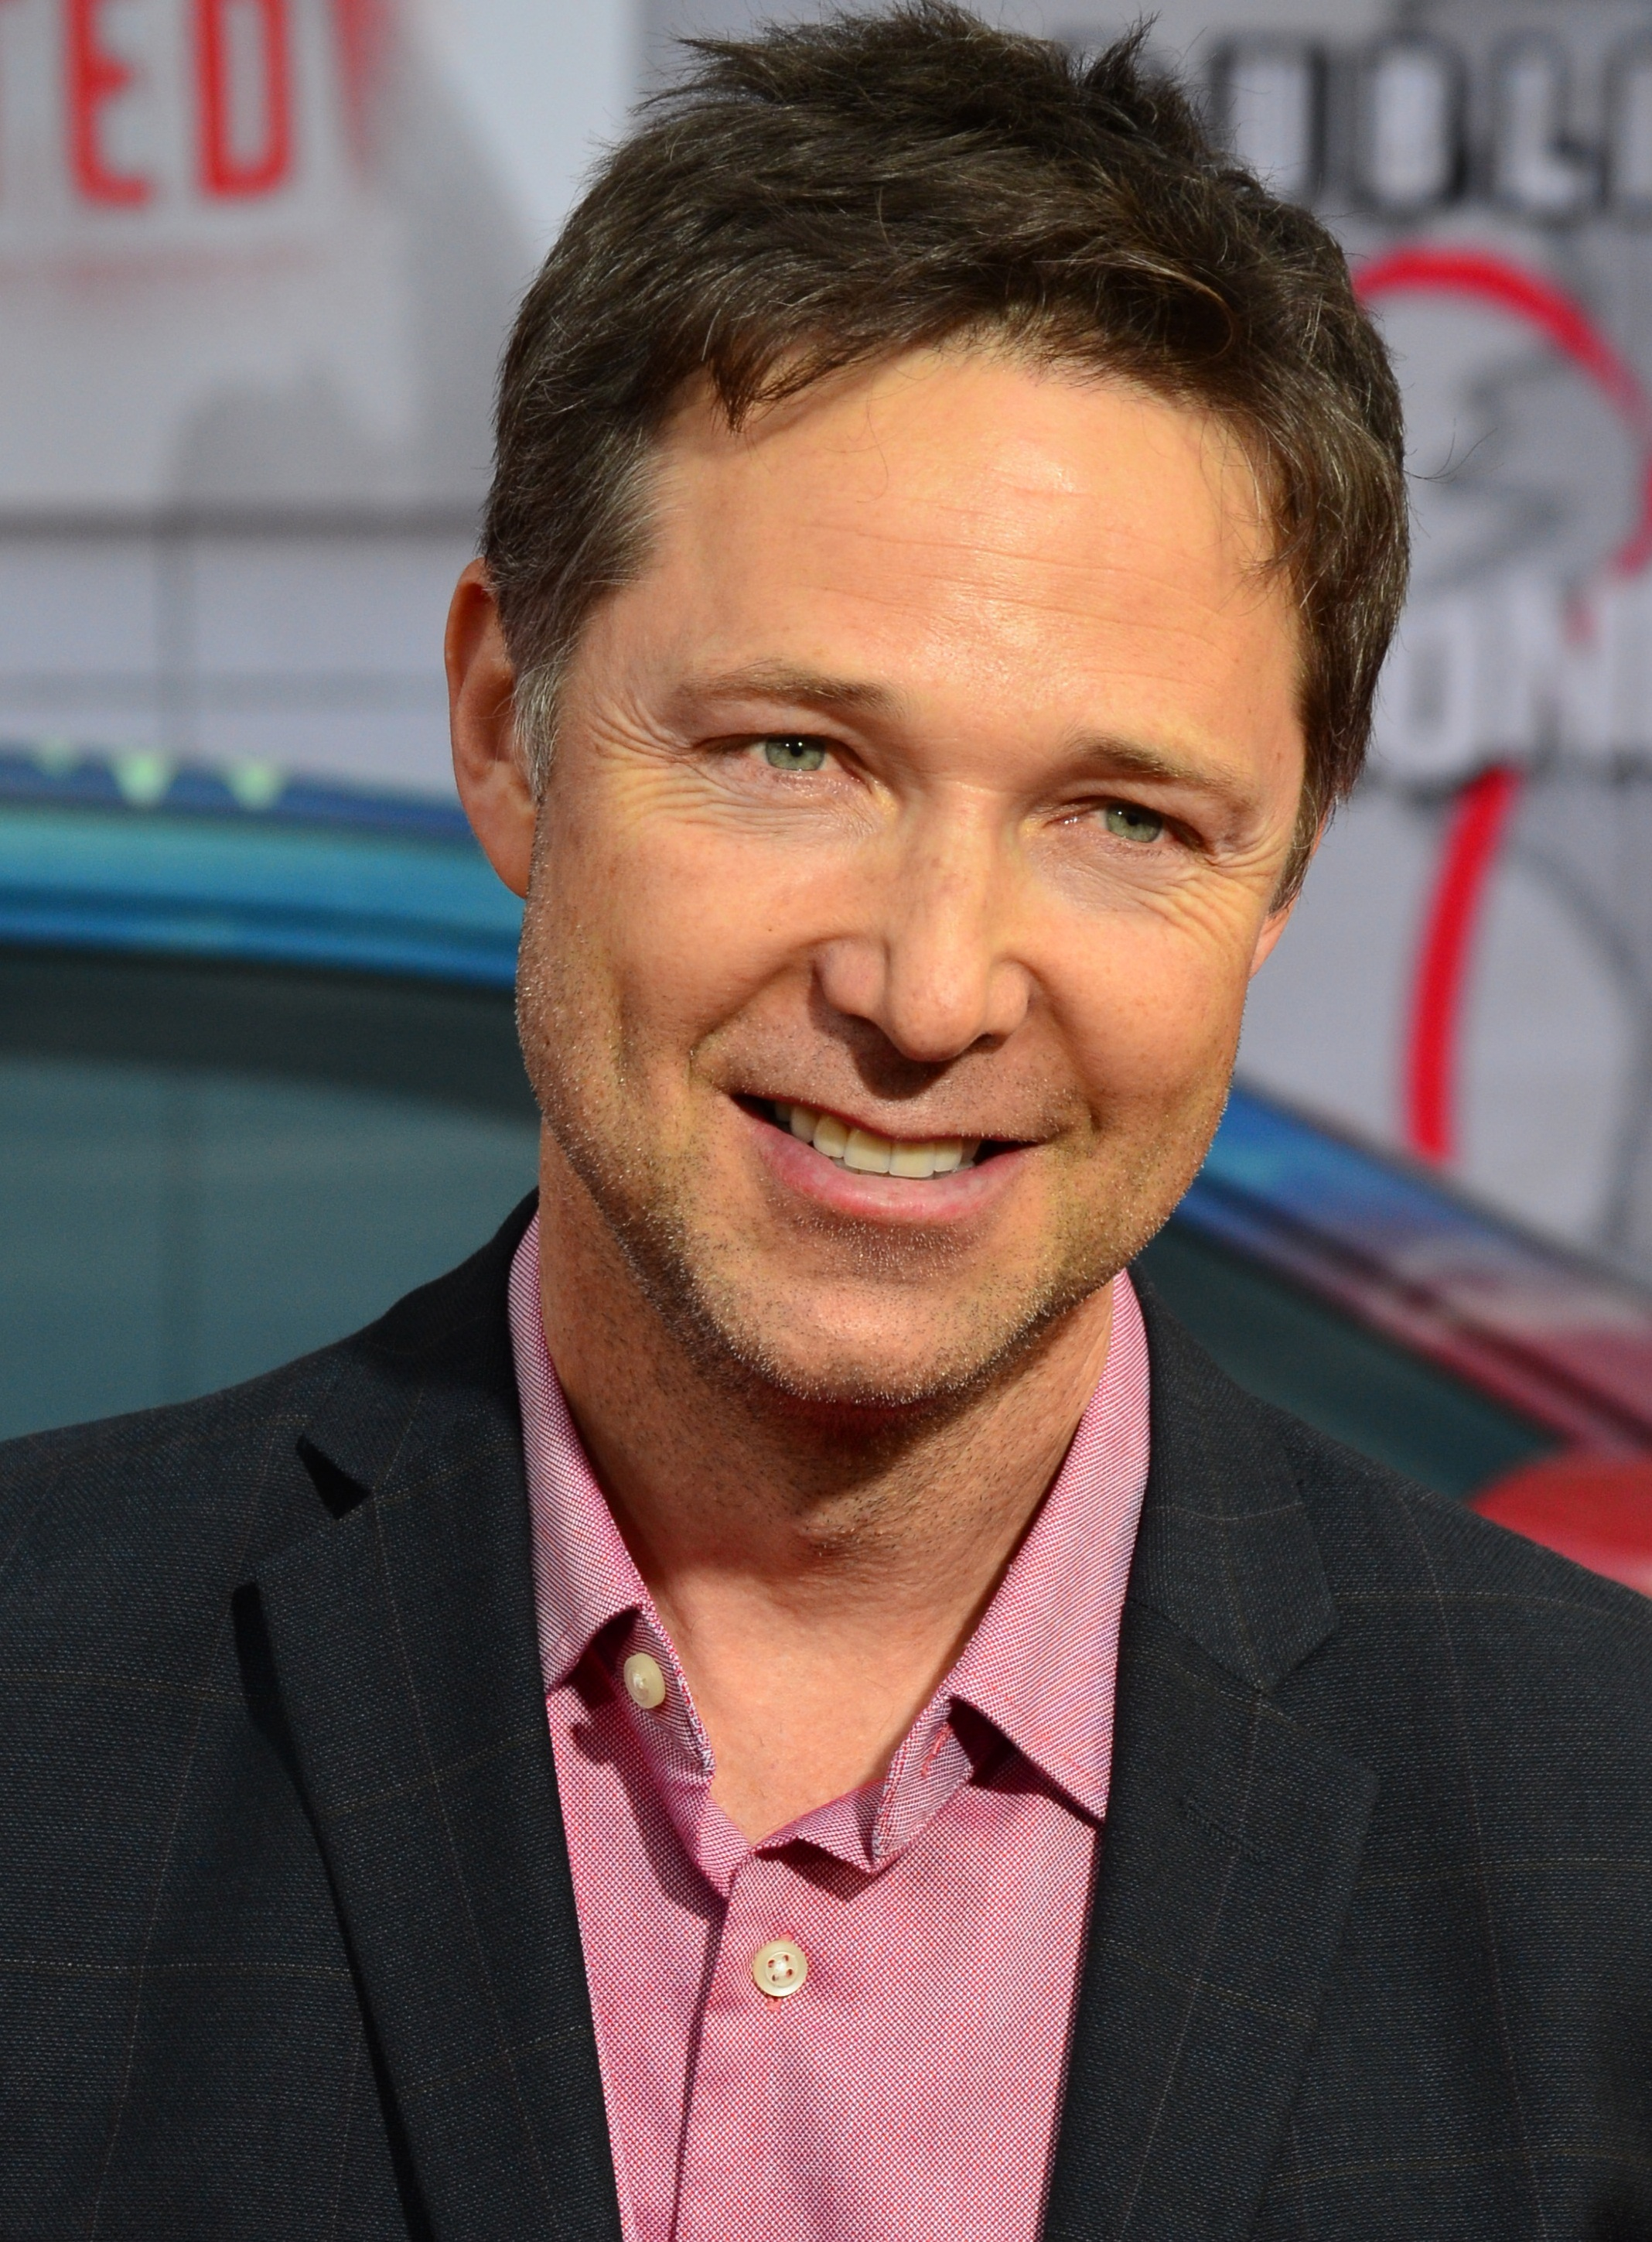 The 53-year old son of father David Newbern and mother Betty Newbern George Newbern in 2018 photo. George Newbern earned a  million dollar salary - leaving the net worth at  million in 2018